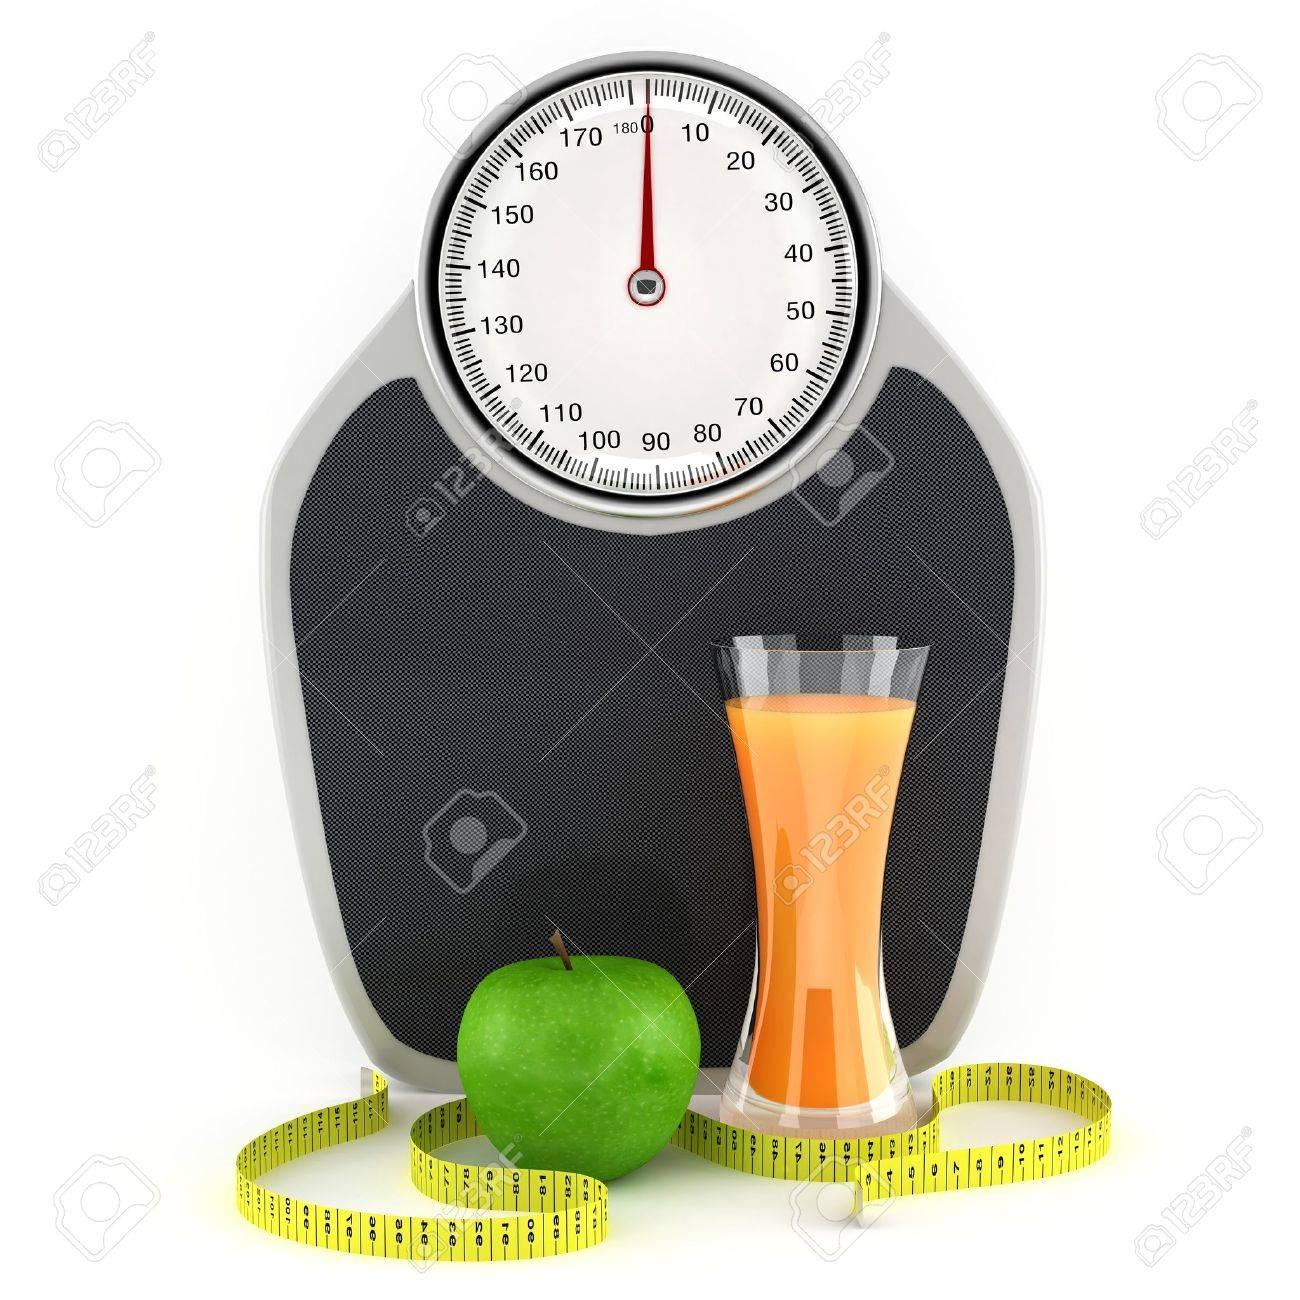 Scales, juice, apple and measuring tape - a symbol of a healthy lifestyle Stock Photo - 10967620